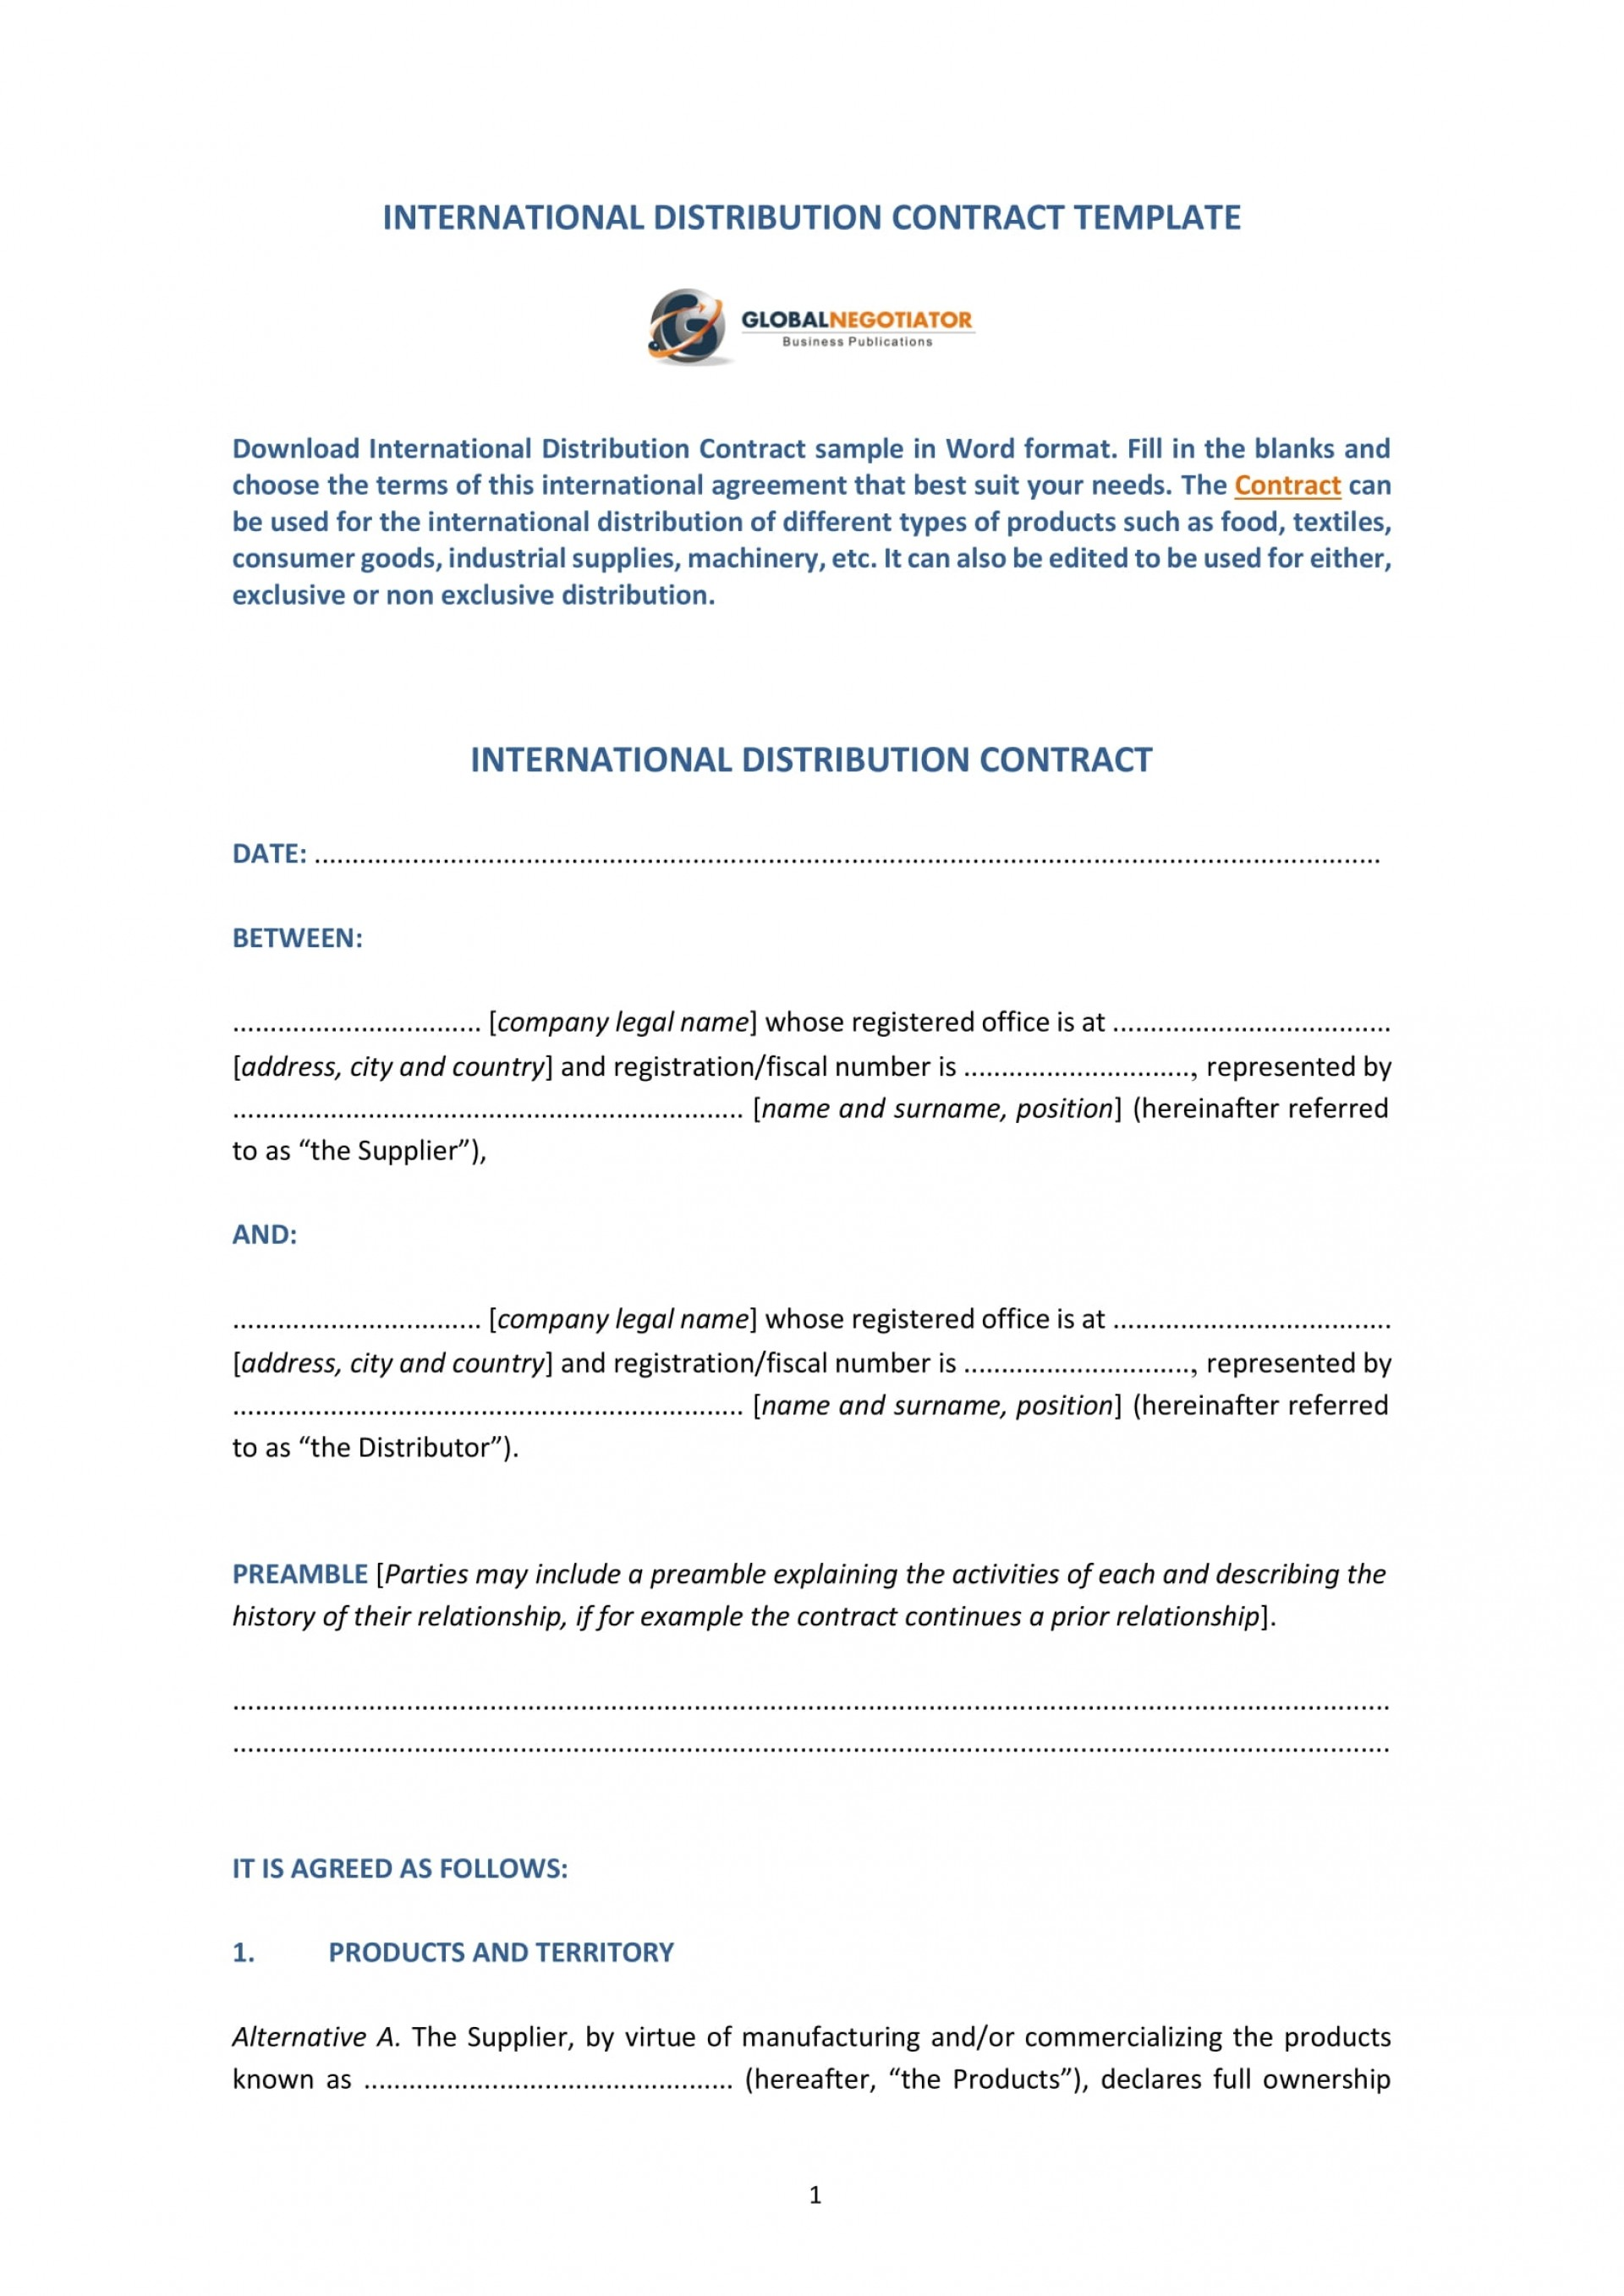 009 Amazing Distribution Agreement Template Word Image  Distributor Exclusive Contract1920